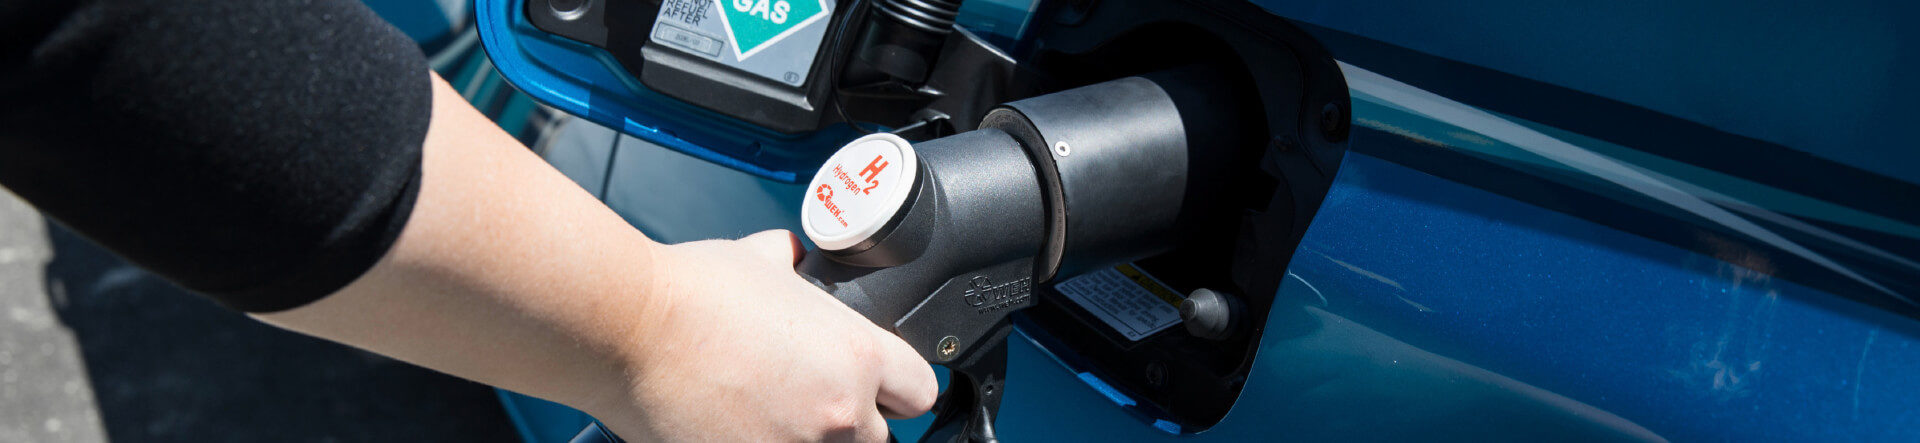 Hydrogen is the ultimate energy carrier that can supply future clean energy